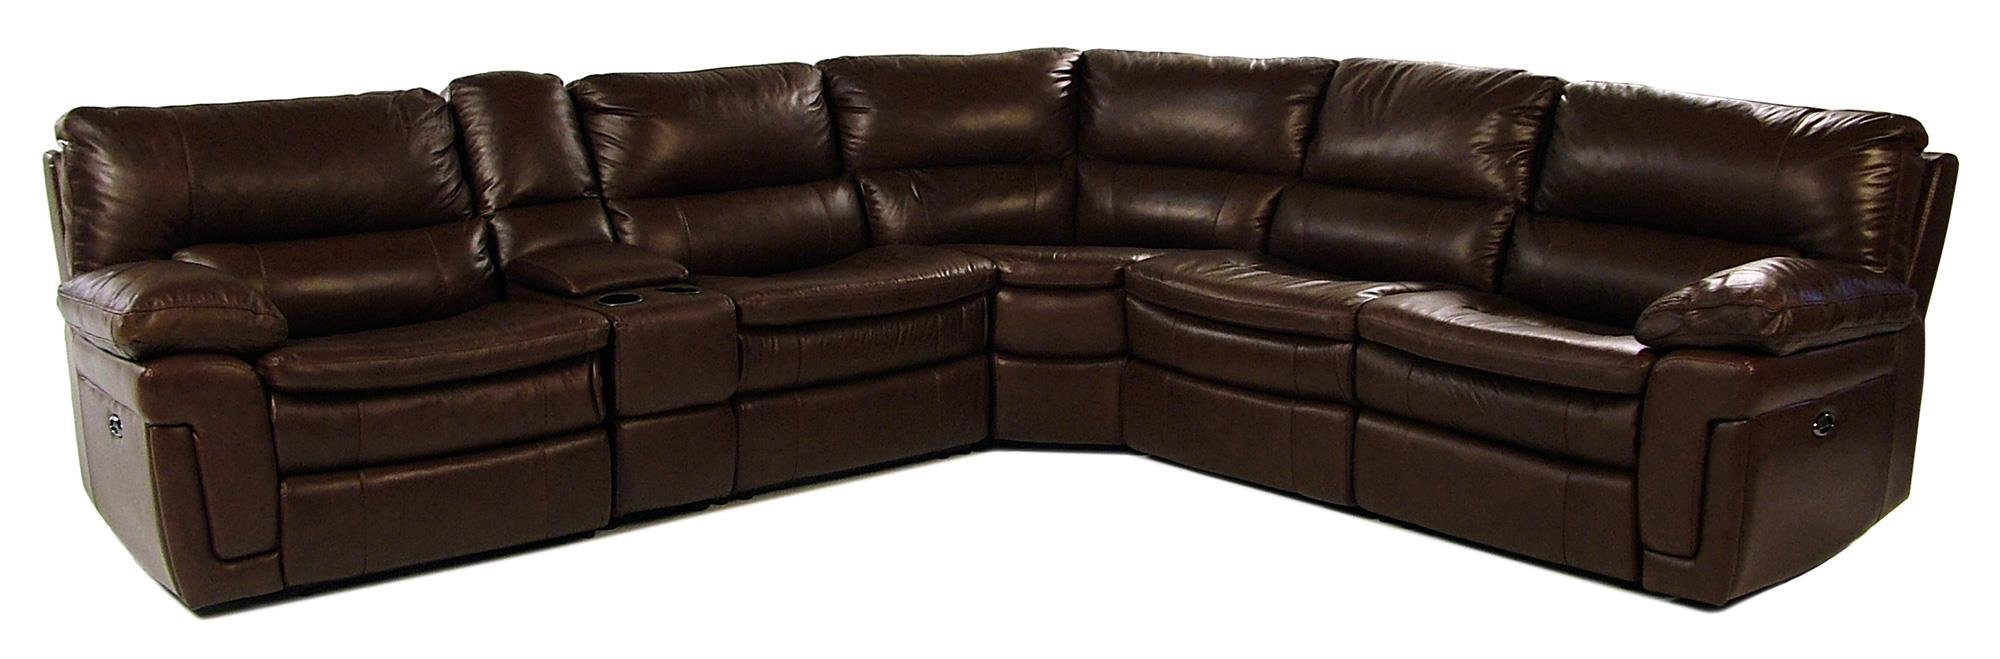 Giovani Fairwinds 6PC Power Reclining Leather Sectional - Item Number: 10291-6PC-SECT